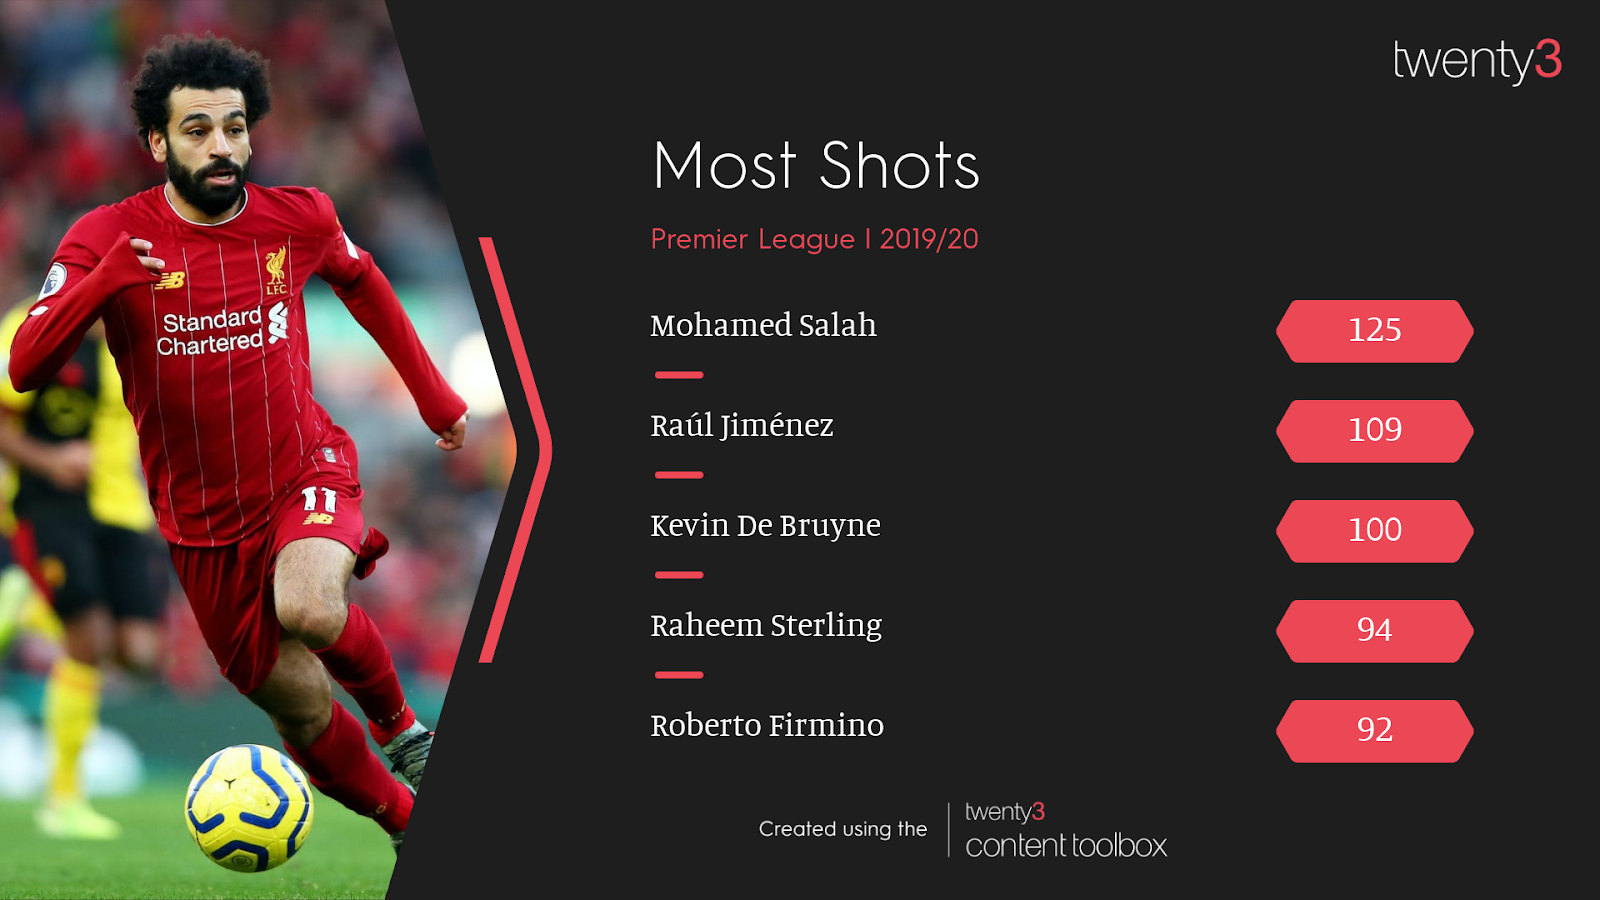 Graphic showing which Premier League players took the most shots in 2019/20, featuring Raúl Jiménez in second place.